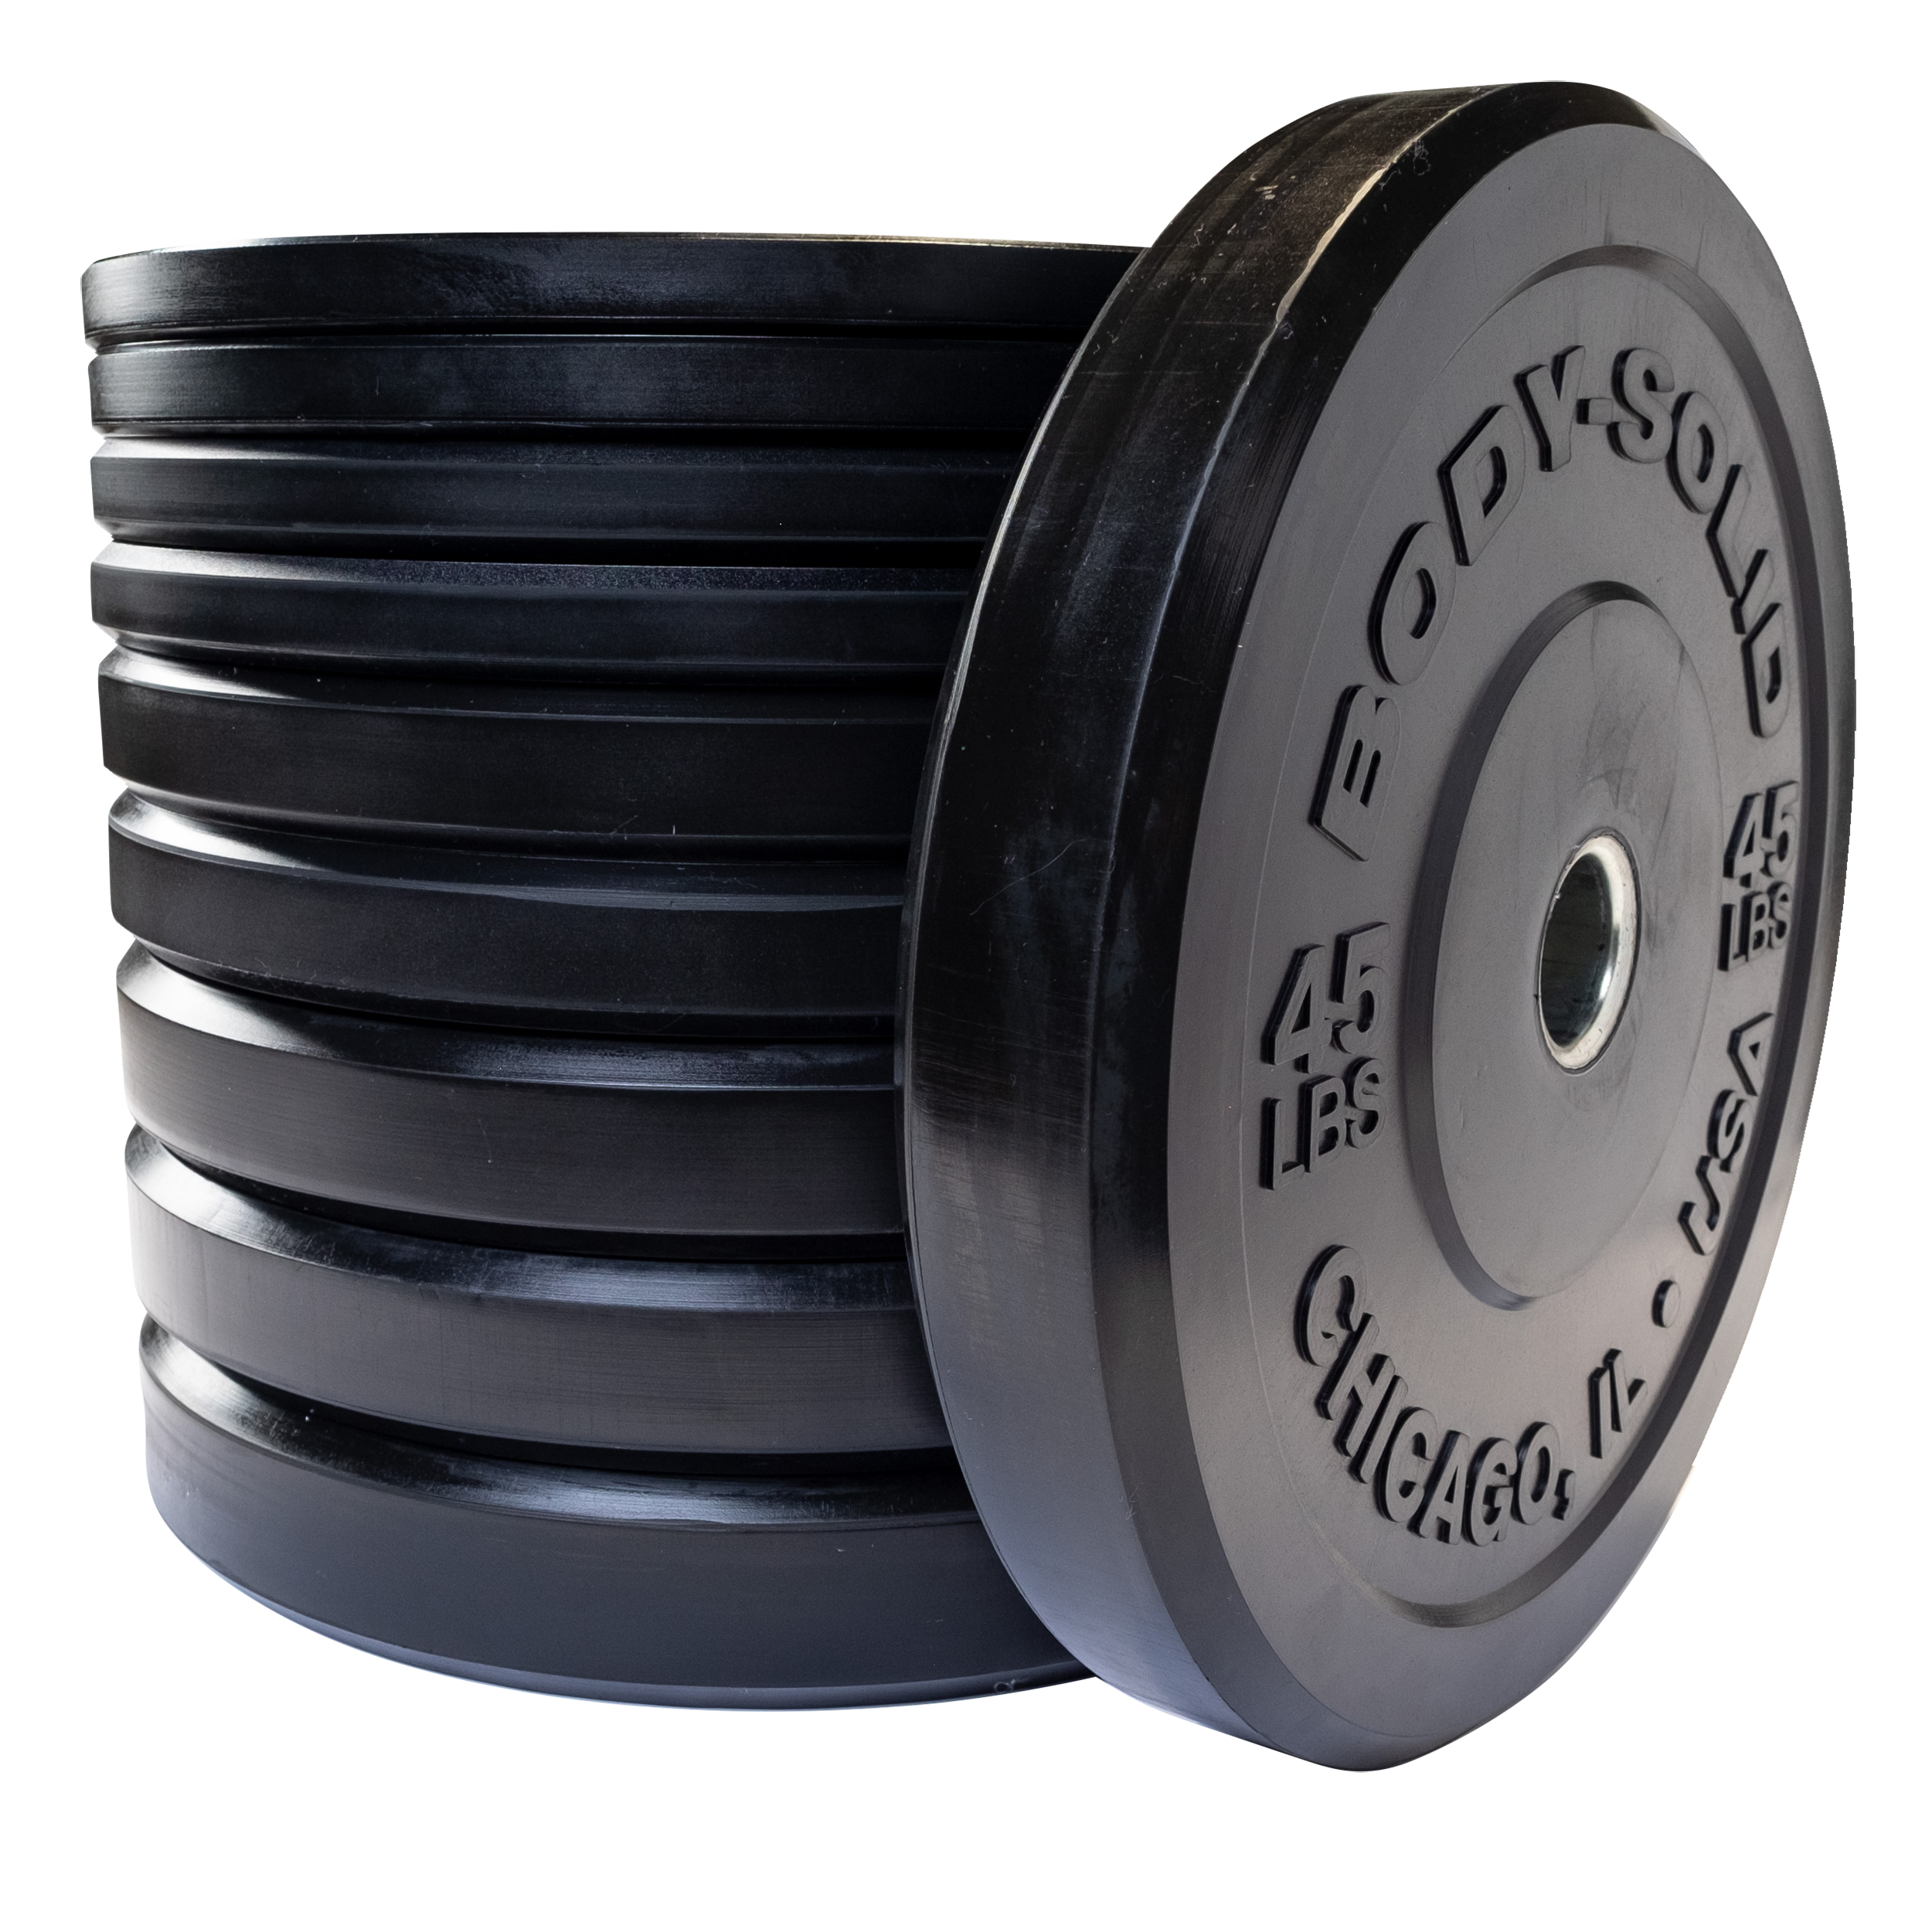 Body-Solid Chicago Extreme Bumper Plate 260lb Set